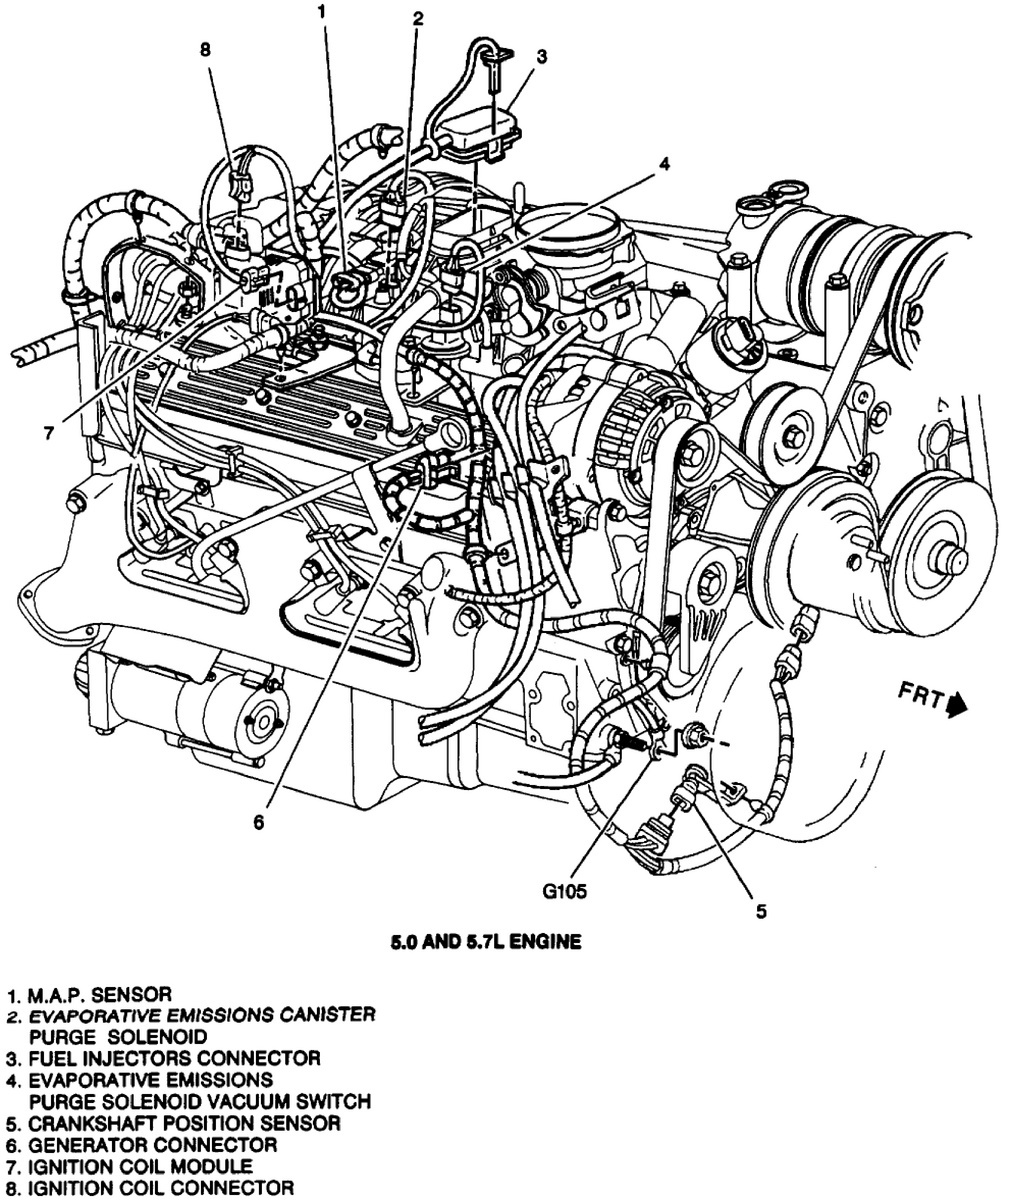 1993 chevy 5 7 liter engine on 1985 chevrolet k 5 engine diagram rh sellfie co